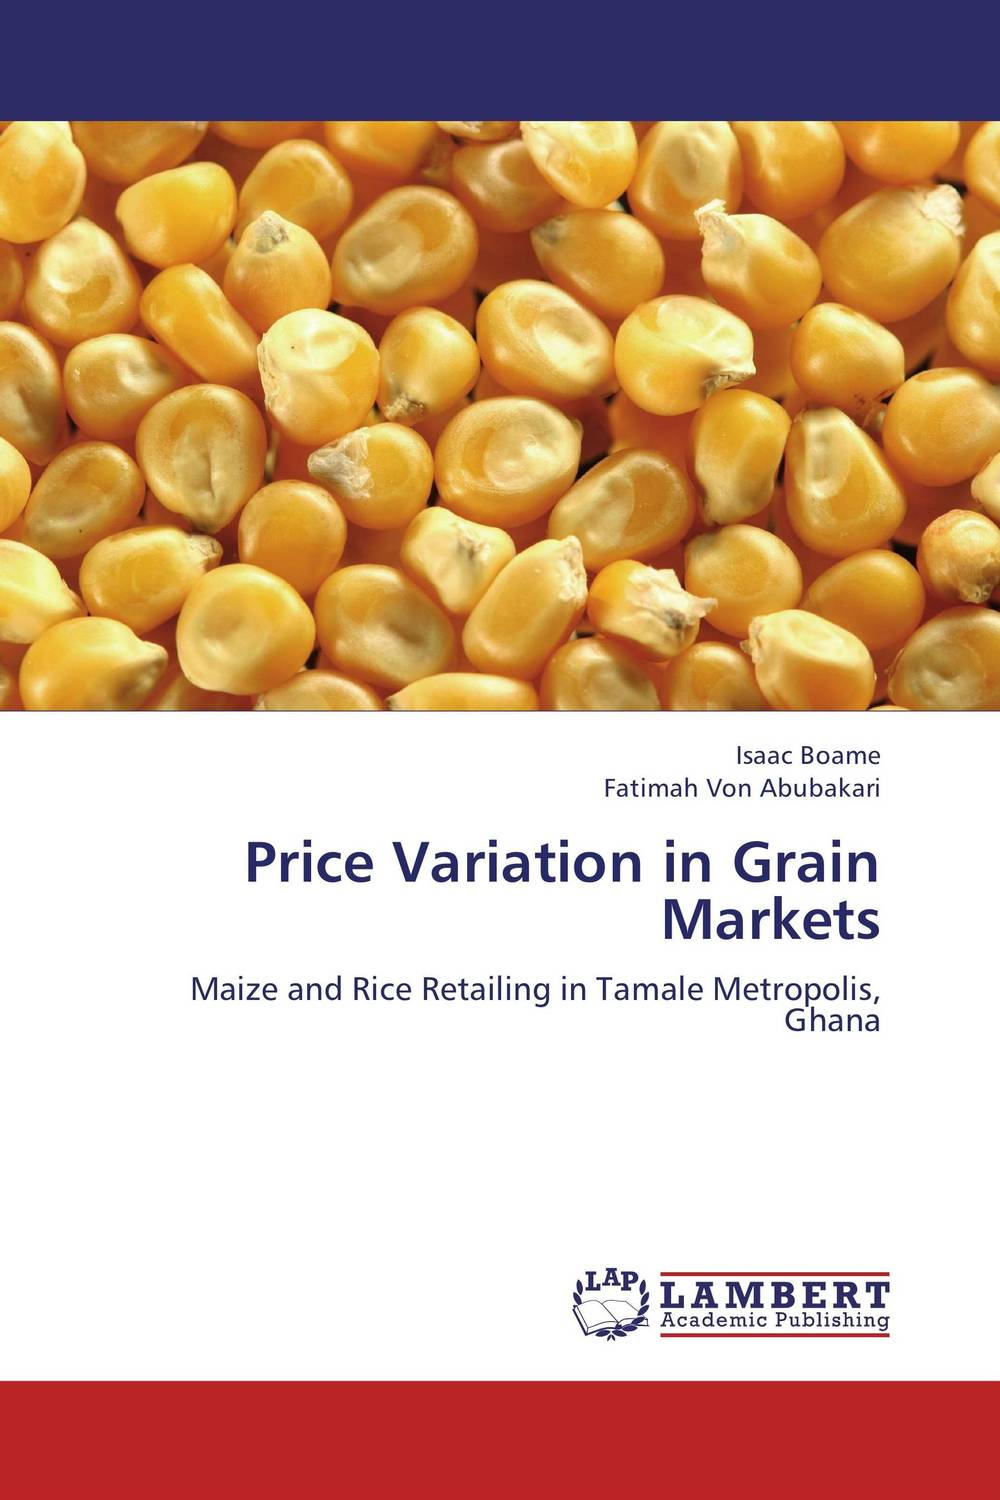 Price Variation in Grain Markets richard teitelbaum the most dangerous trade how short sellers uncover fraud keep markets honest and make and lose billions